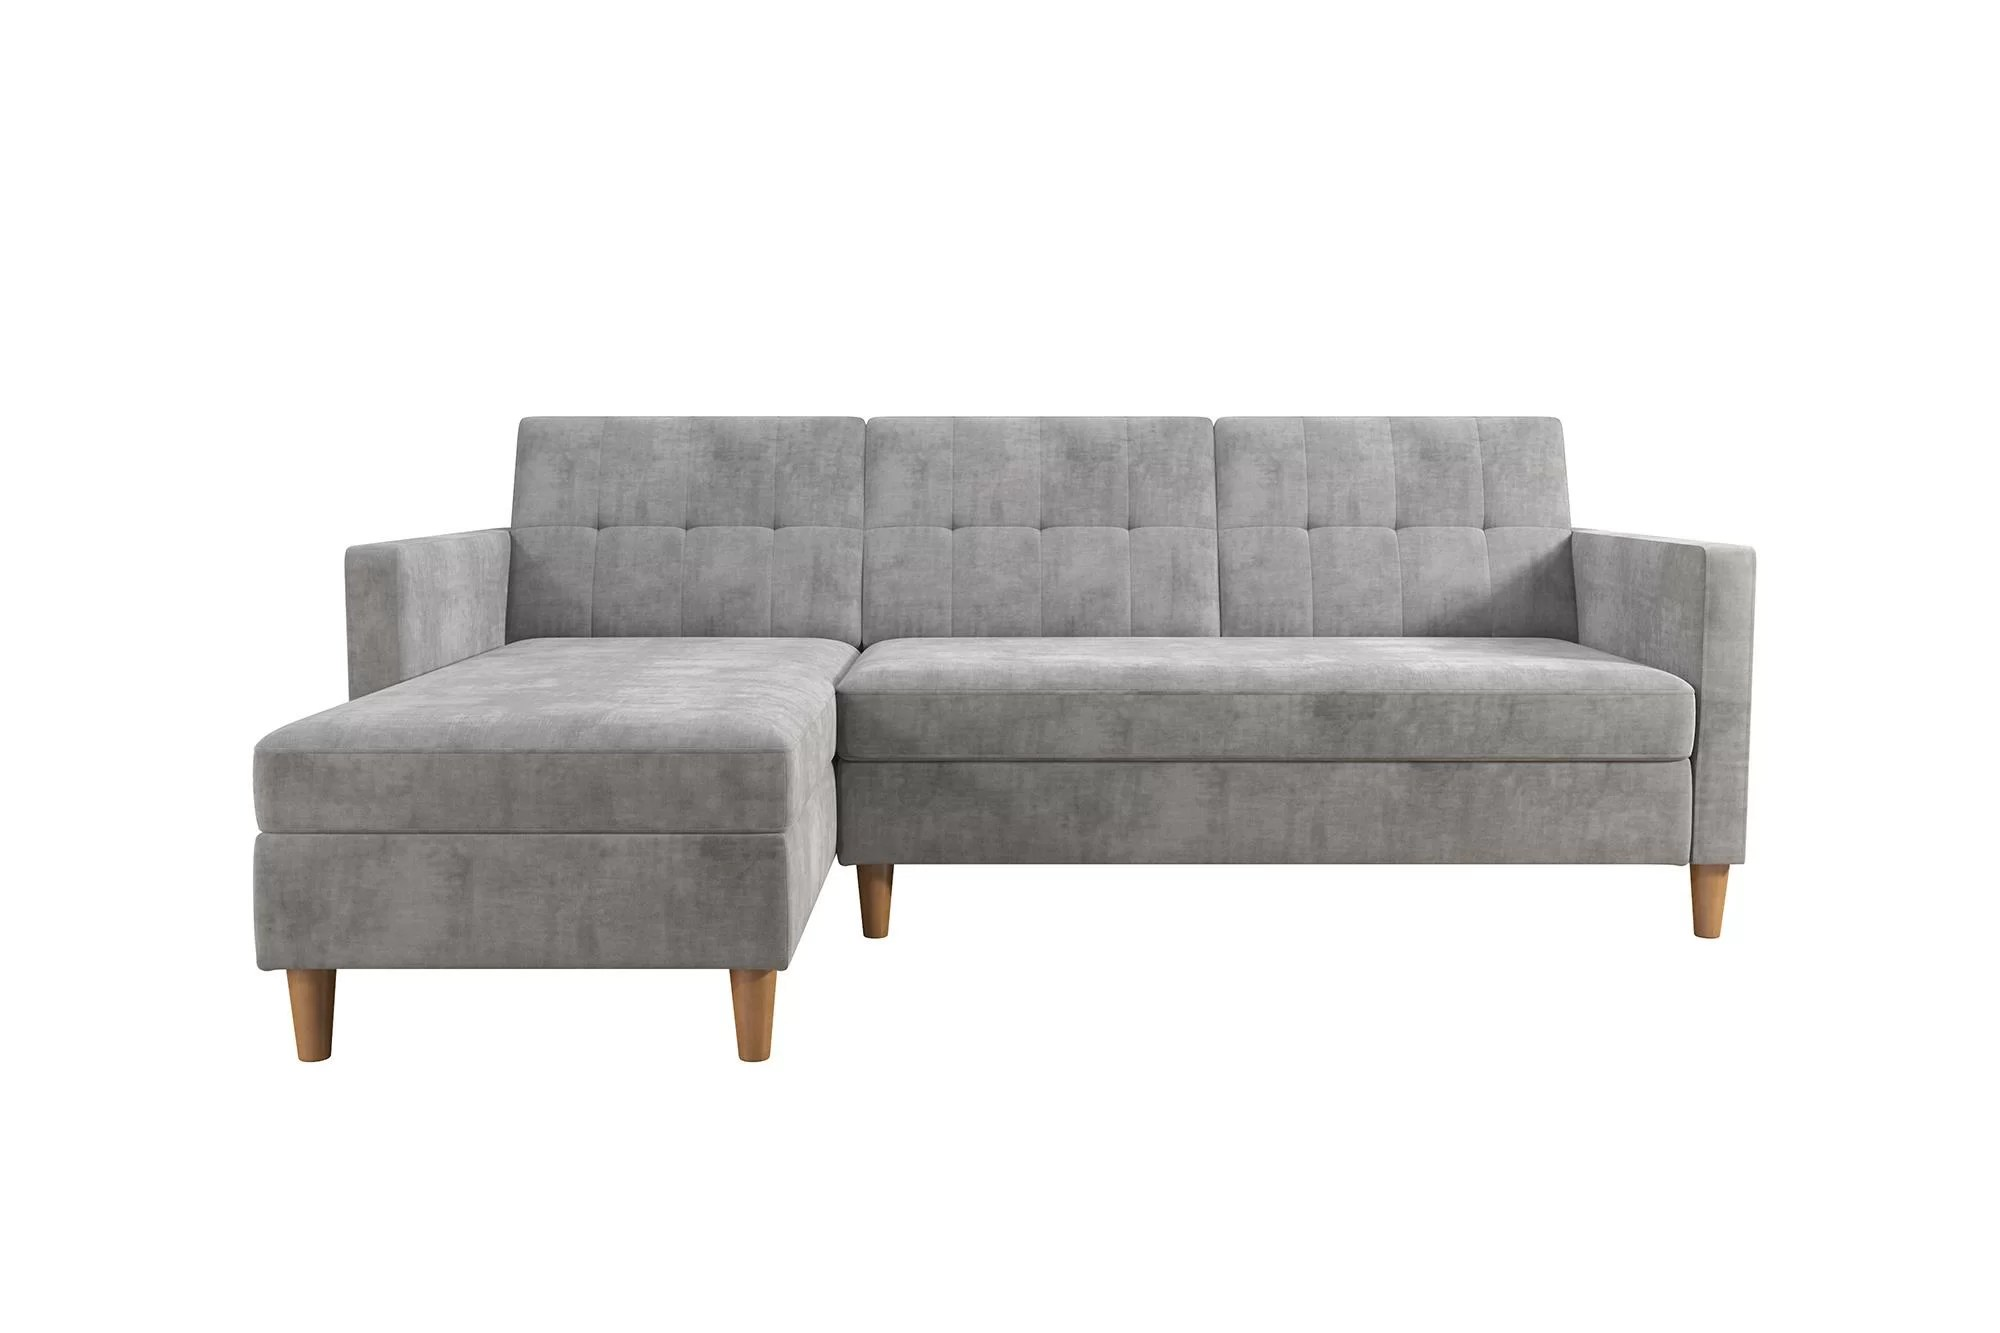 Sofa Dreams Outlet Modern Sectional Sofas Allmodern